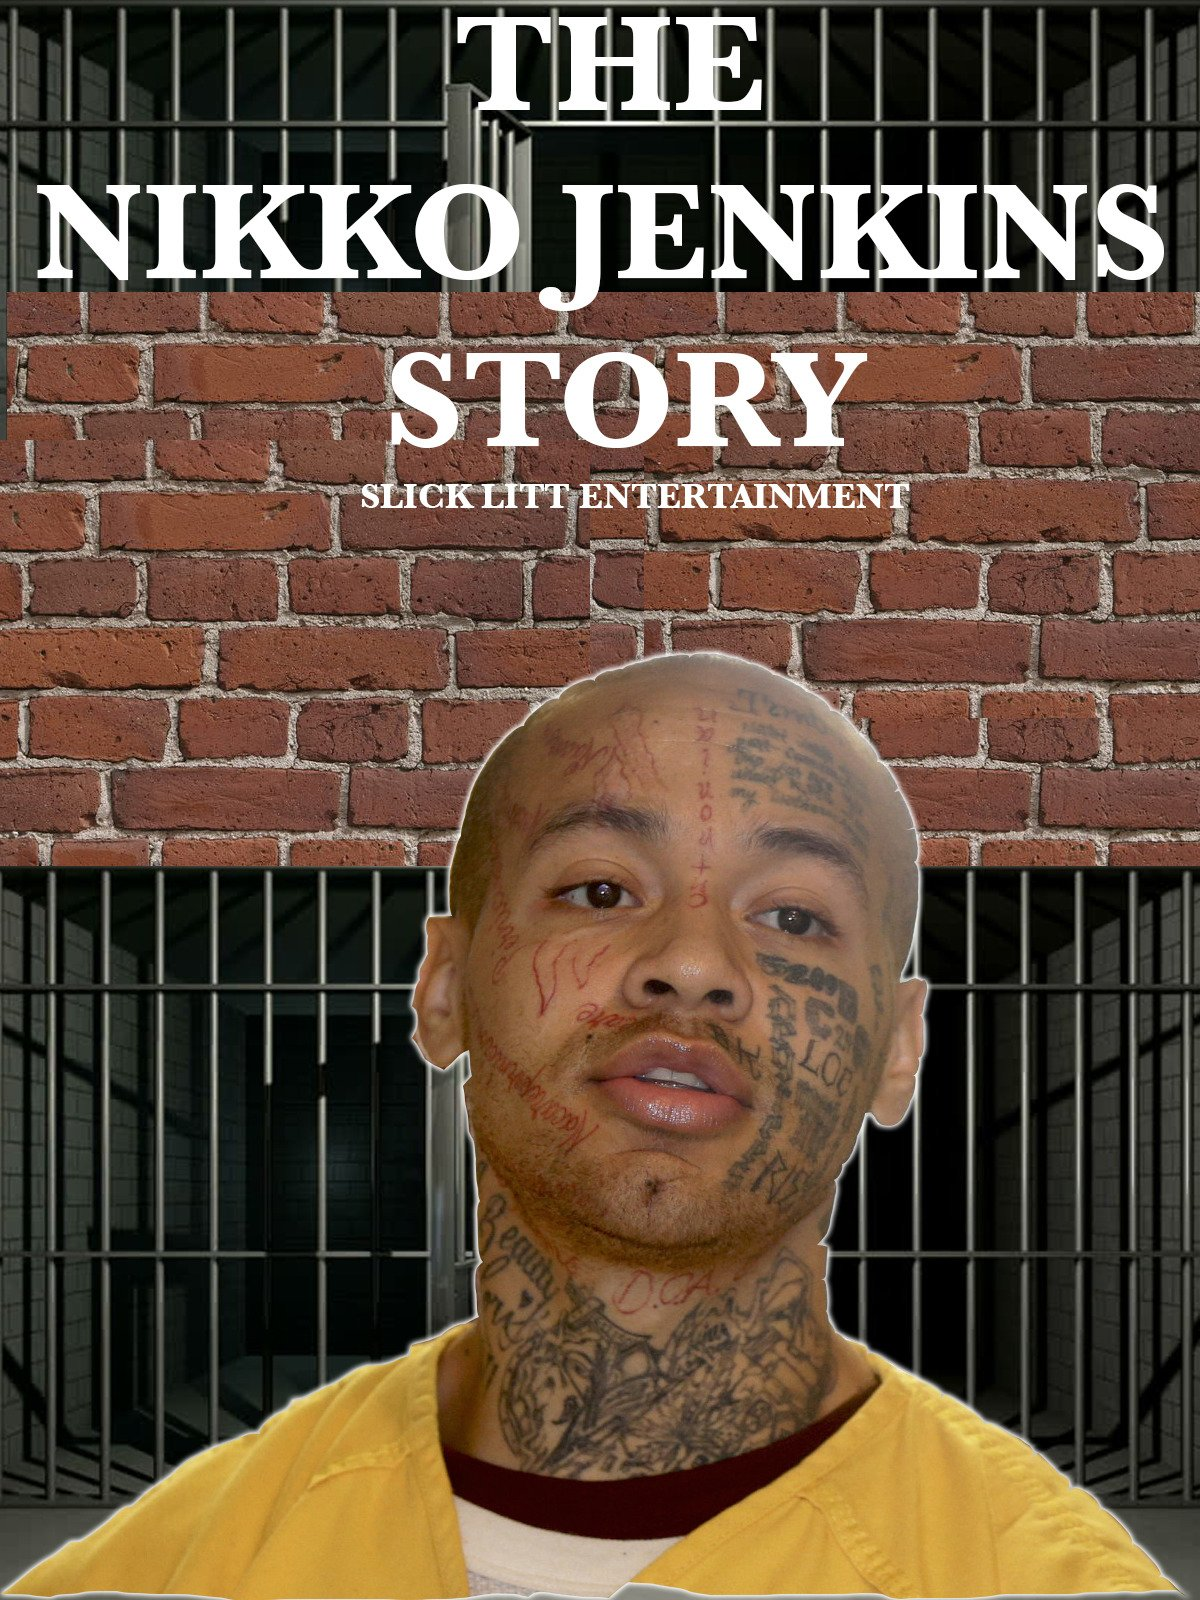 The Nikko Jenkins Story